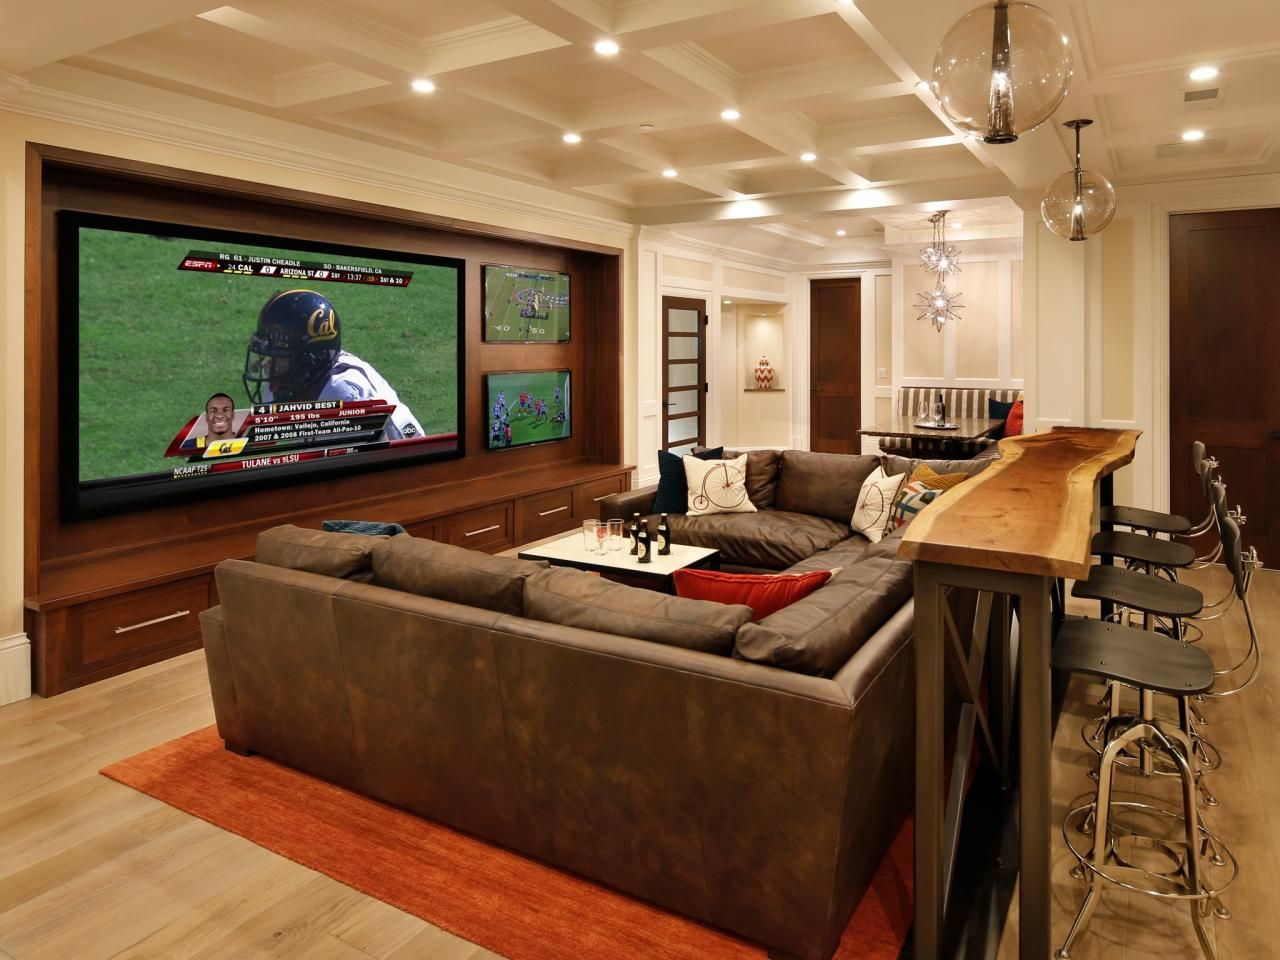 This luxury basement was customdesigned for savoring football beer